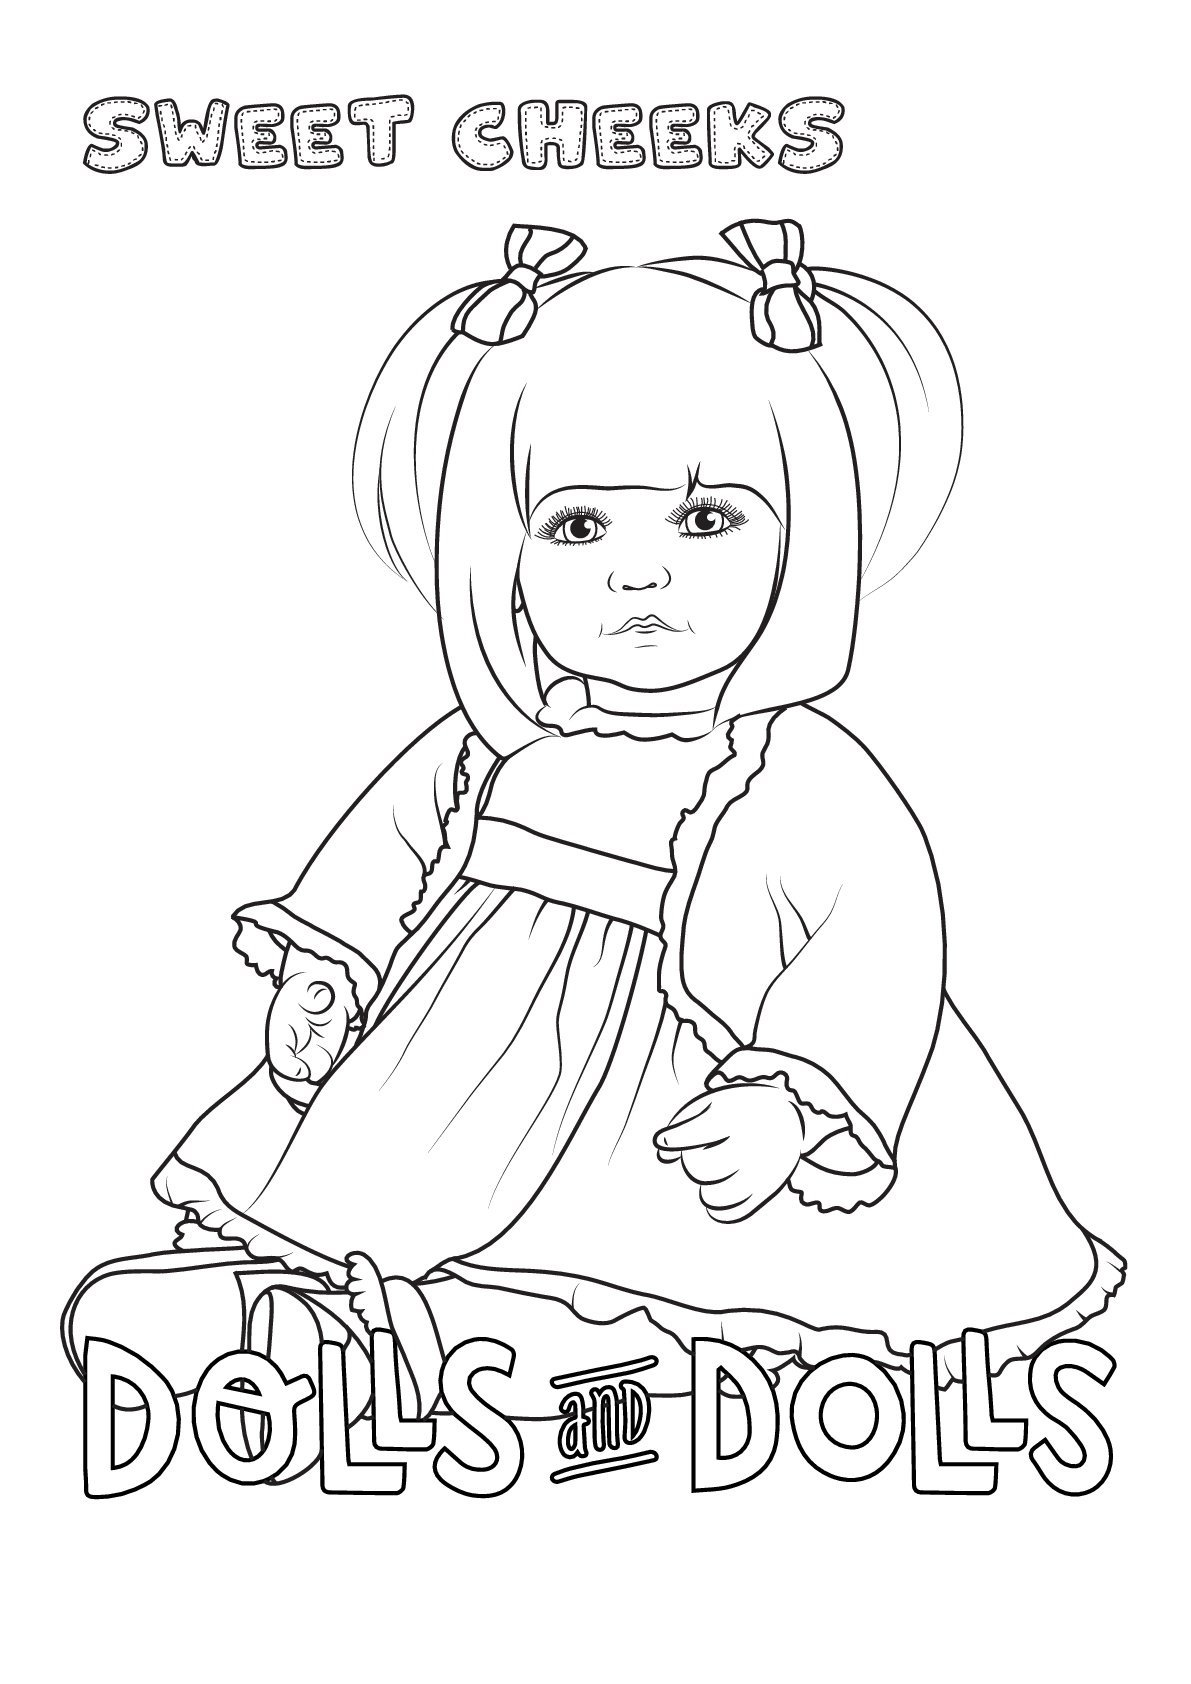 Dibujos De Muñecas Para Colorear Gratis Dolls And Dolls